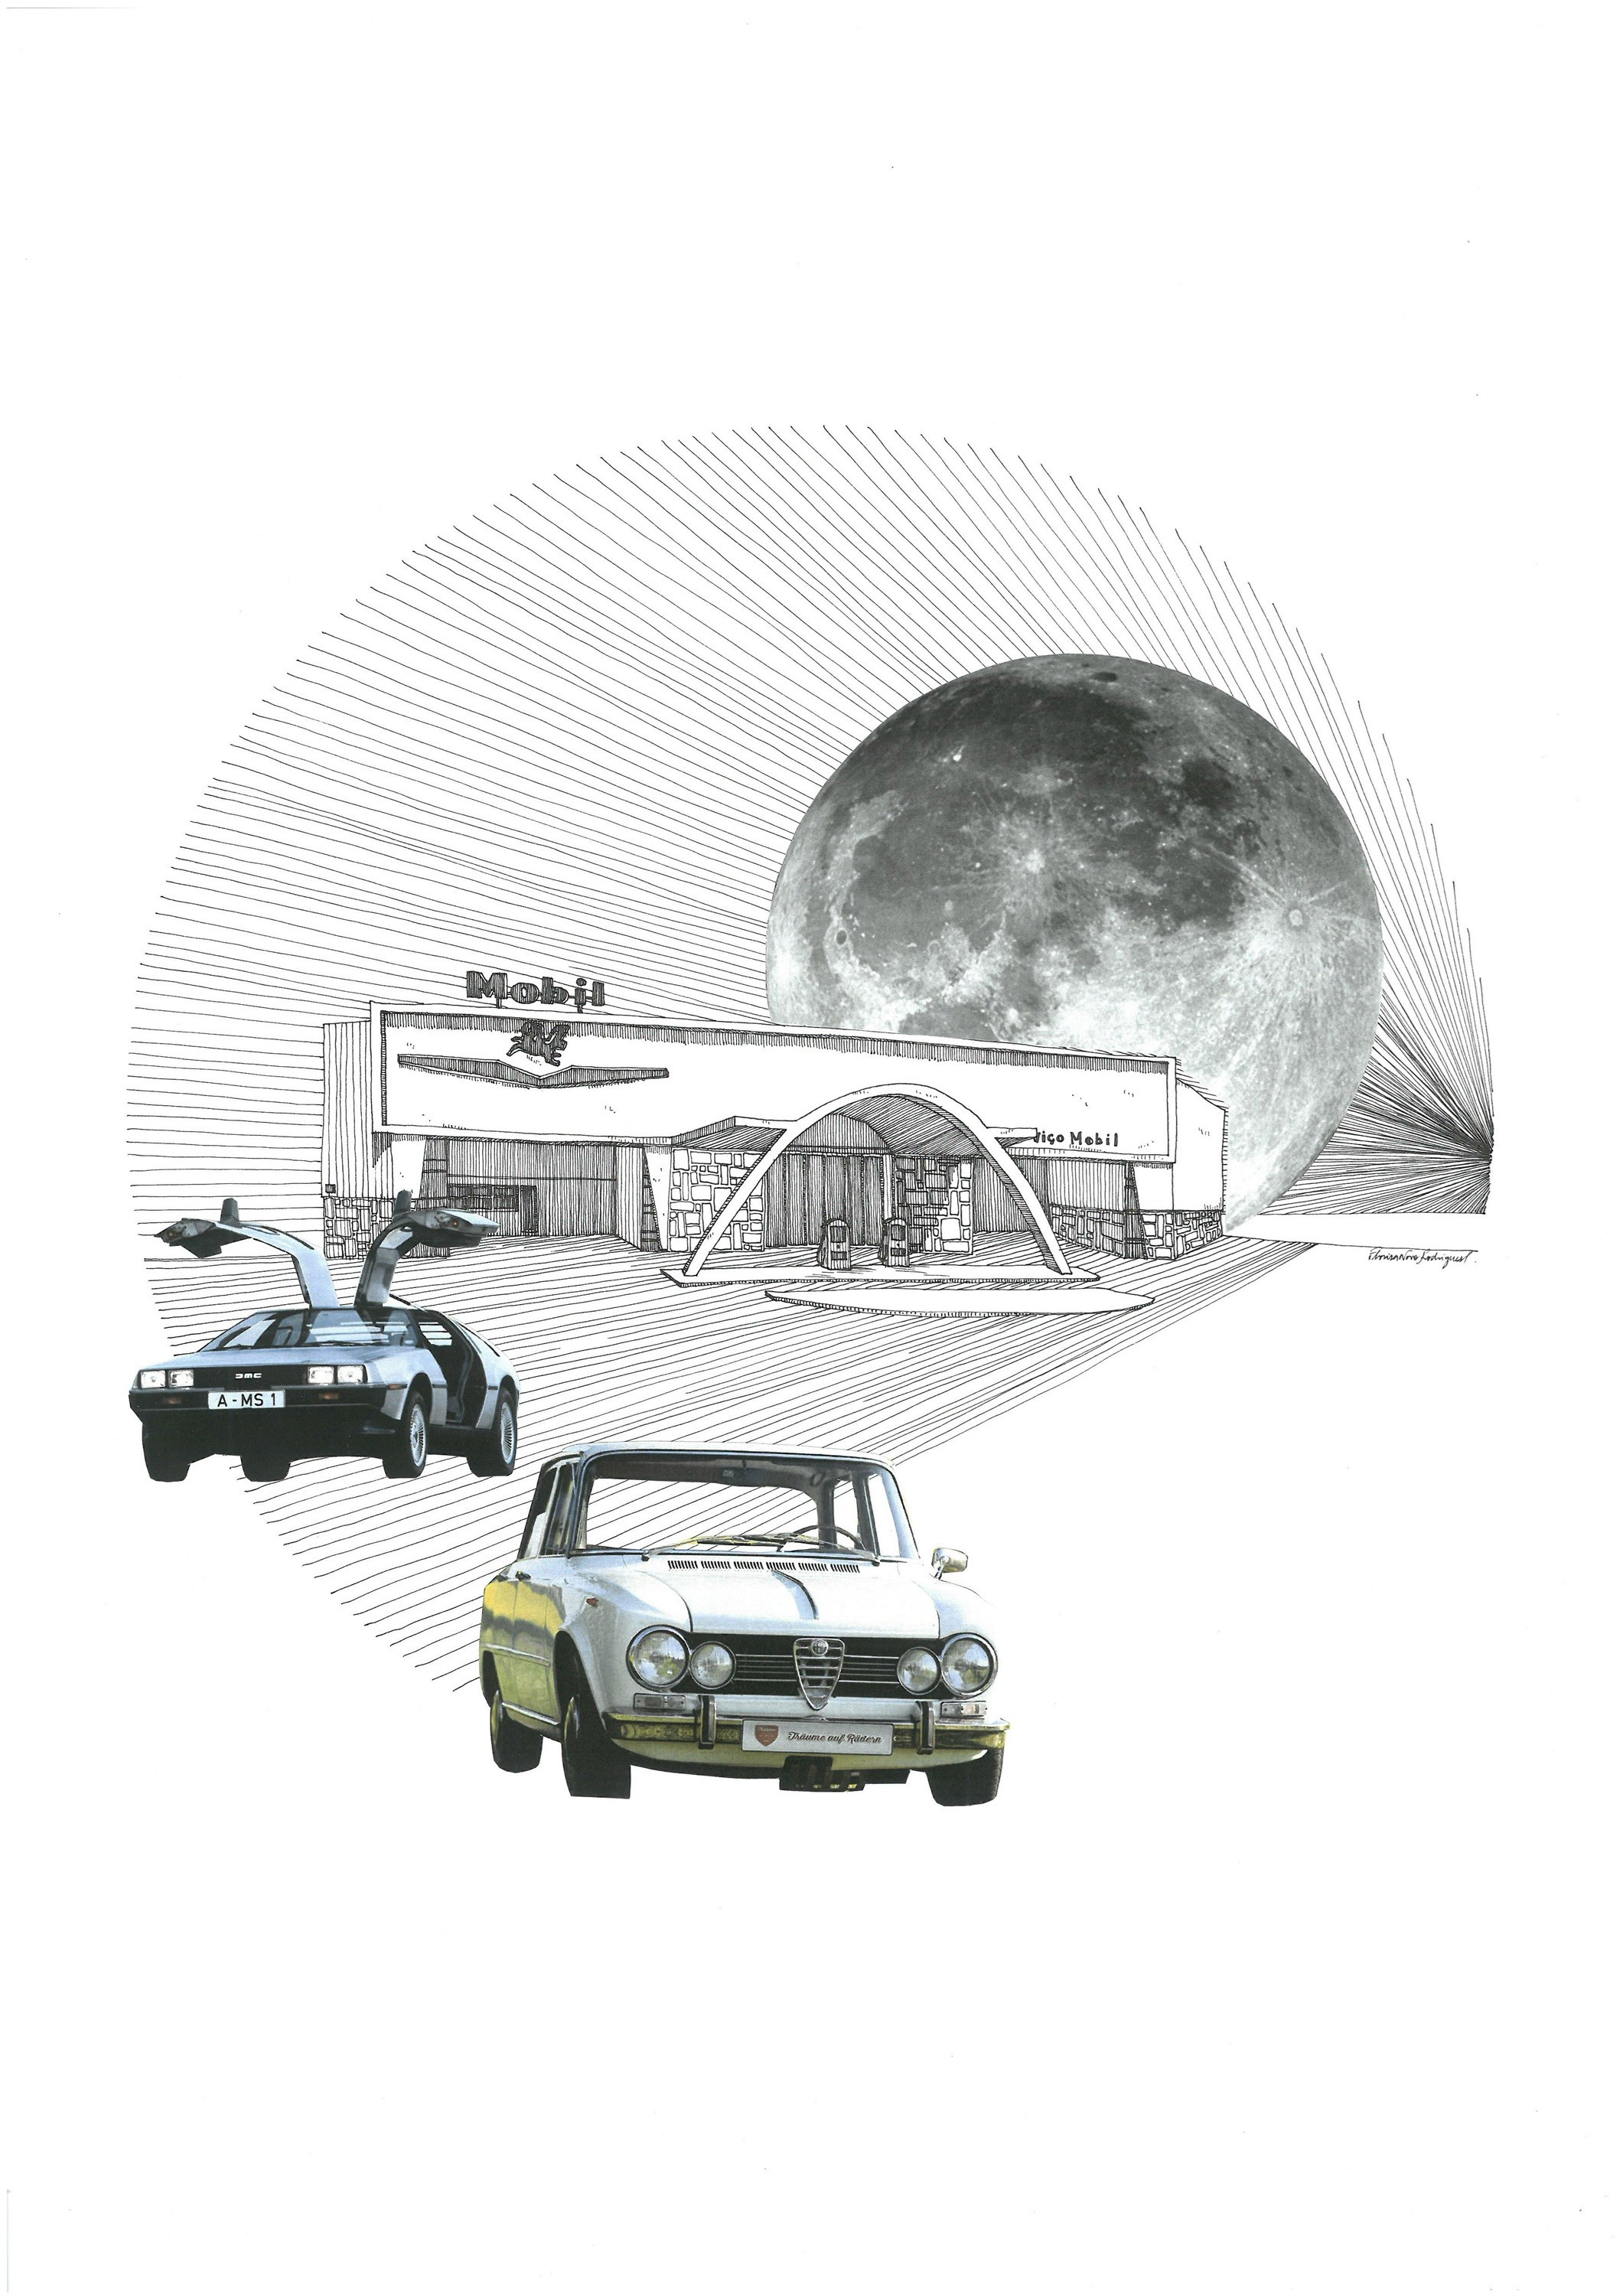 Delorean DMC, original Architecture Collage Drawing and Illustration by Florisa Novo Rodrigues